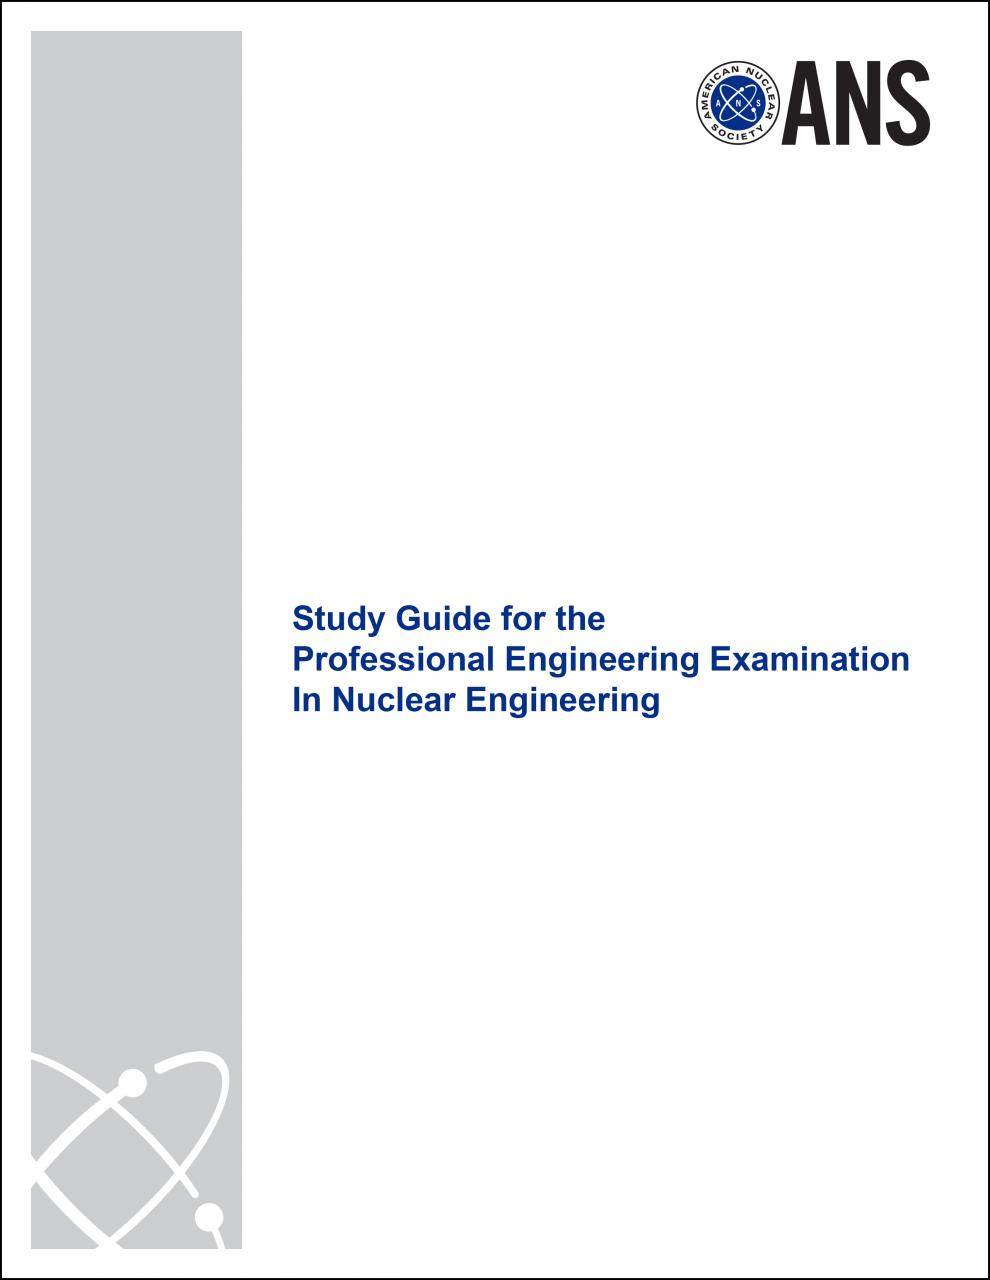 study guide for the professional engineering examination in nuclear rh ans org Exam Study Guide Brady Michael Morton Exam Study Guide Brady Michael Morton